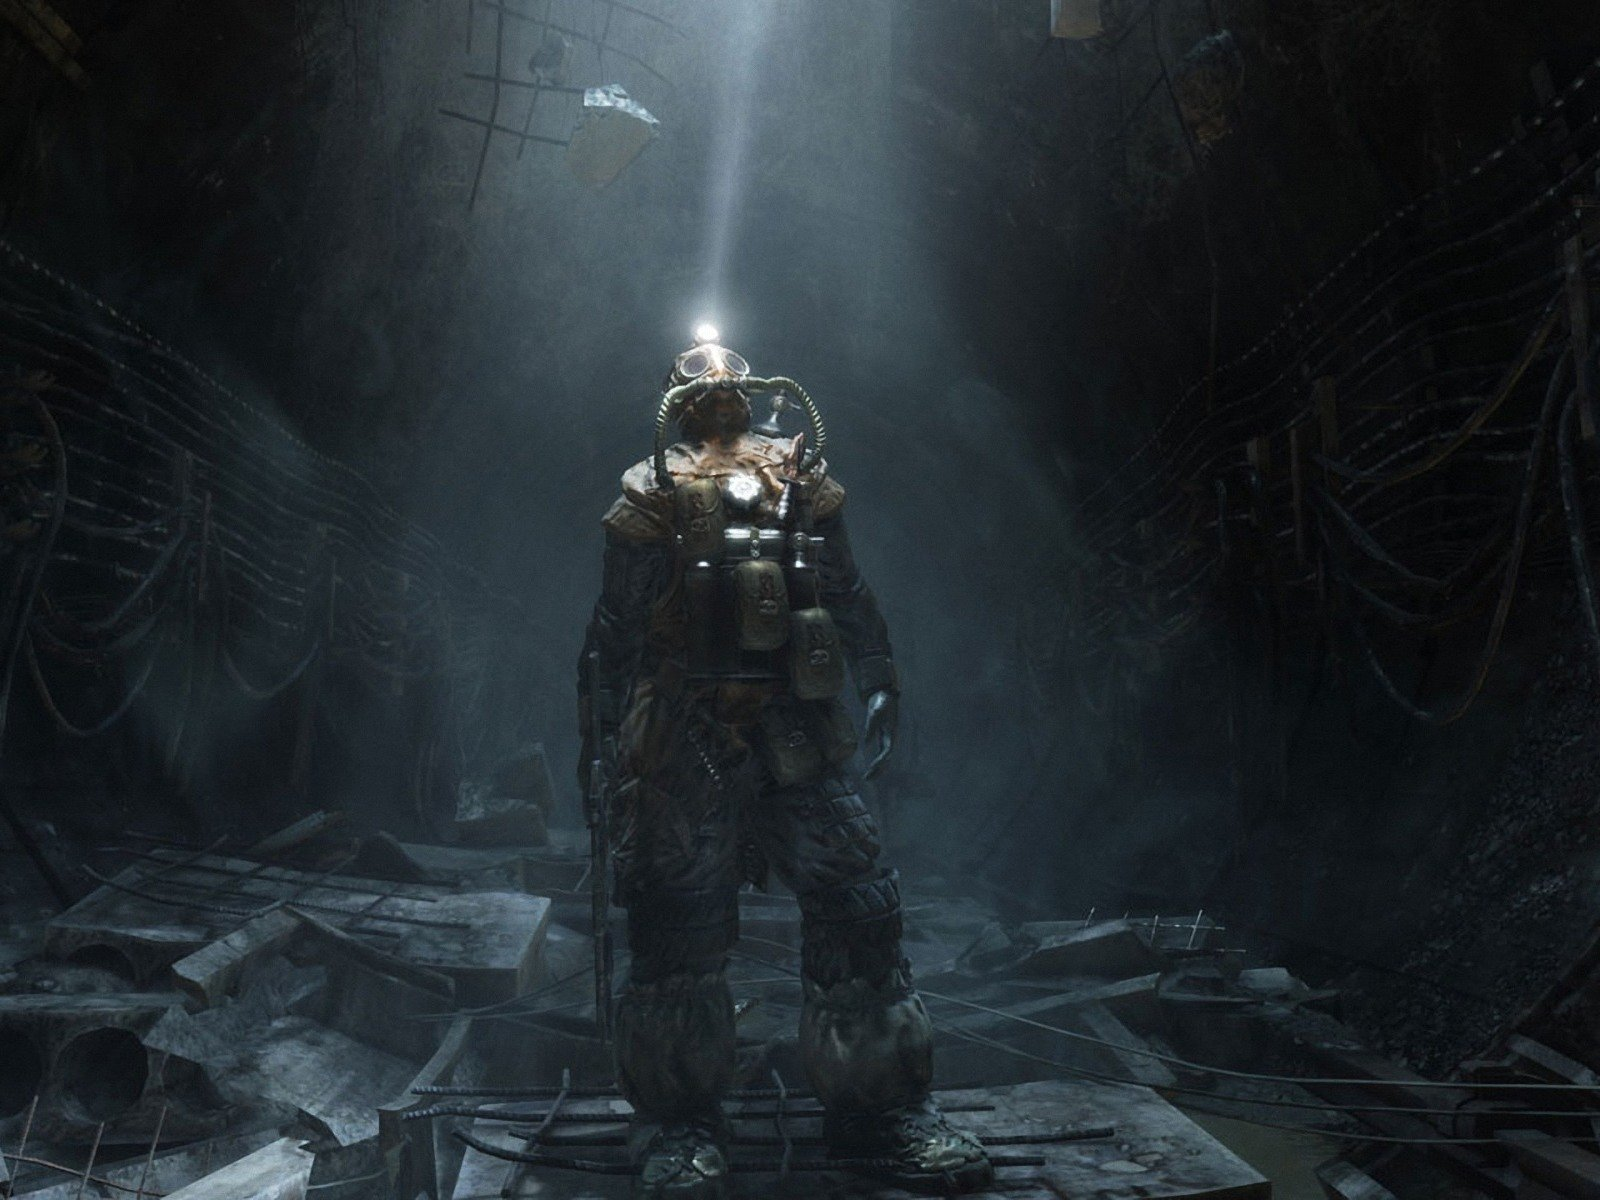 Wallpapers HD Wallpapers Metro Last Light   Game 2013 1600x1200